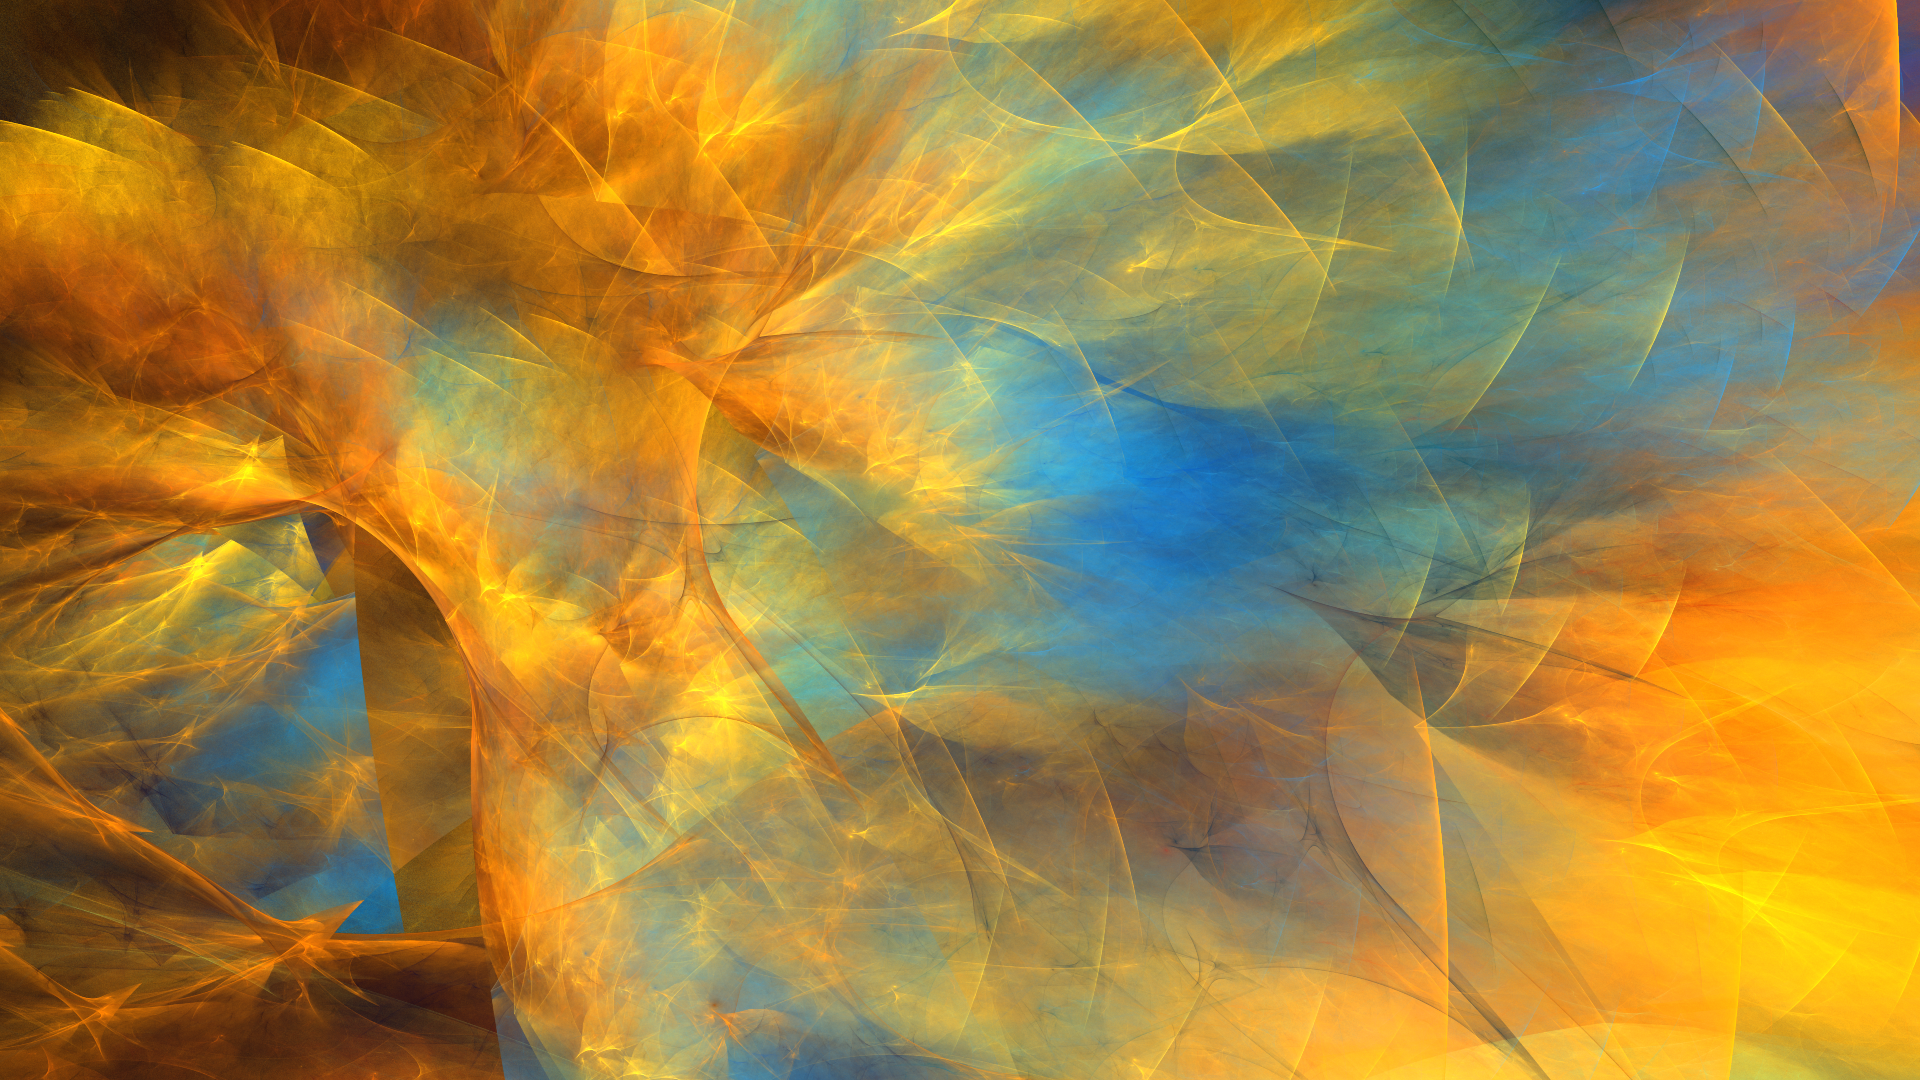 Abstract - Fractal  Apophysis (software) Colors Abstract Digital Art Shapes Artistic Wallpaper